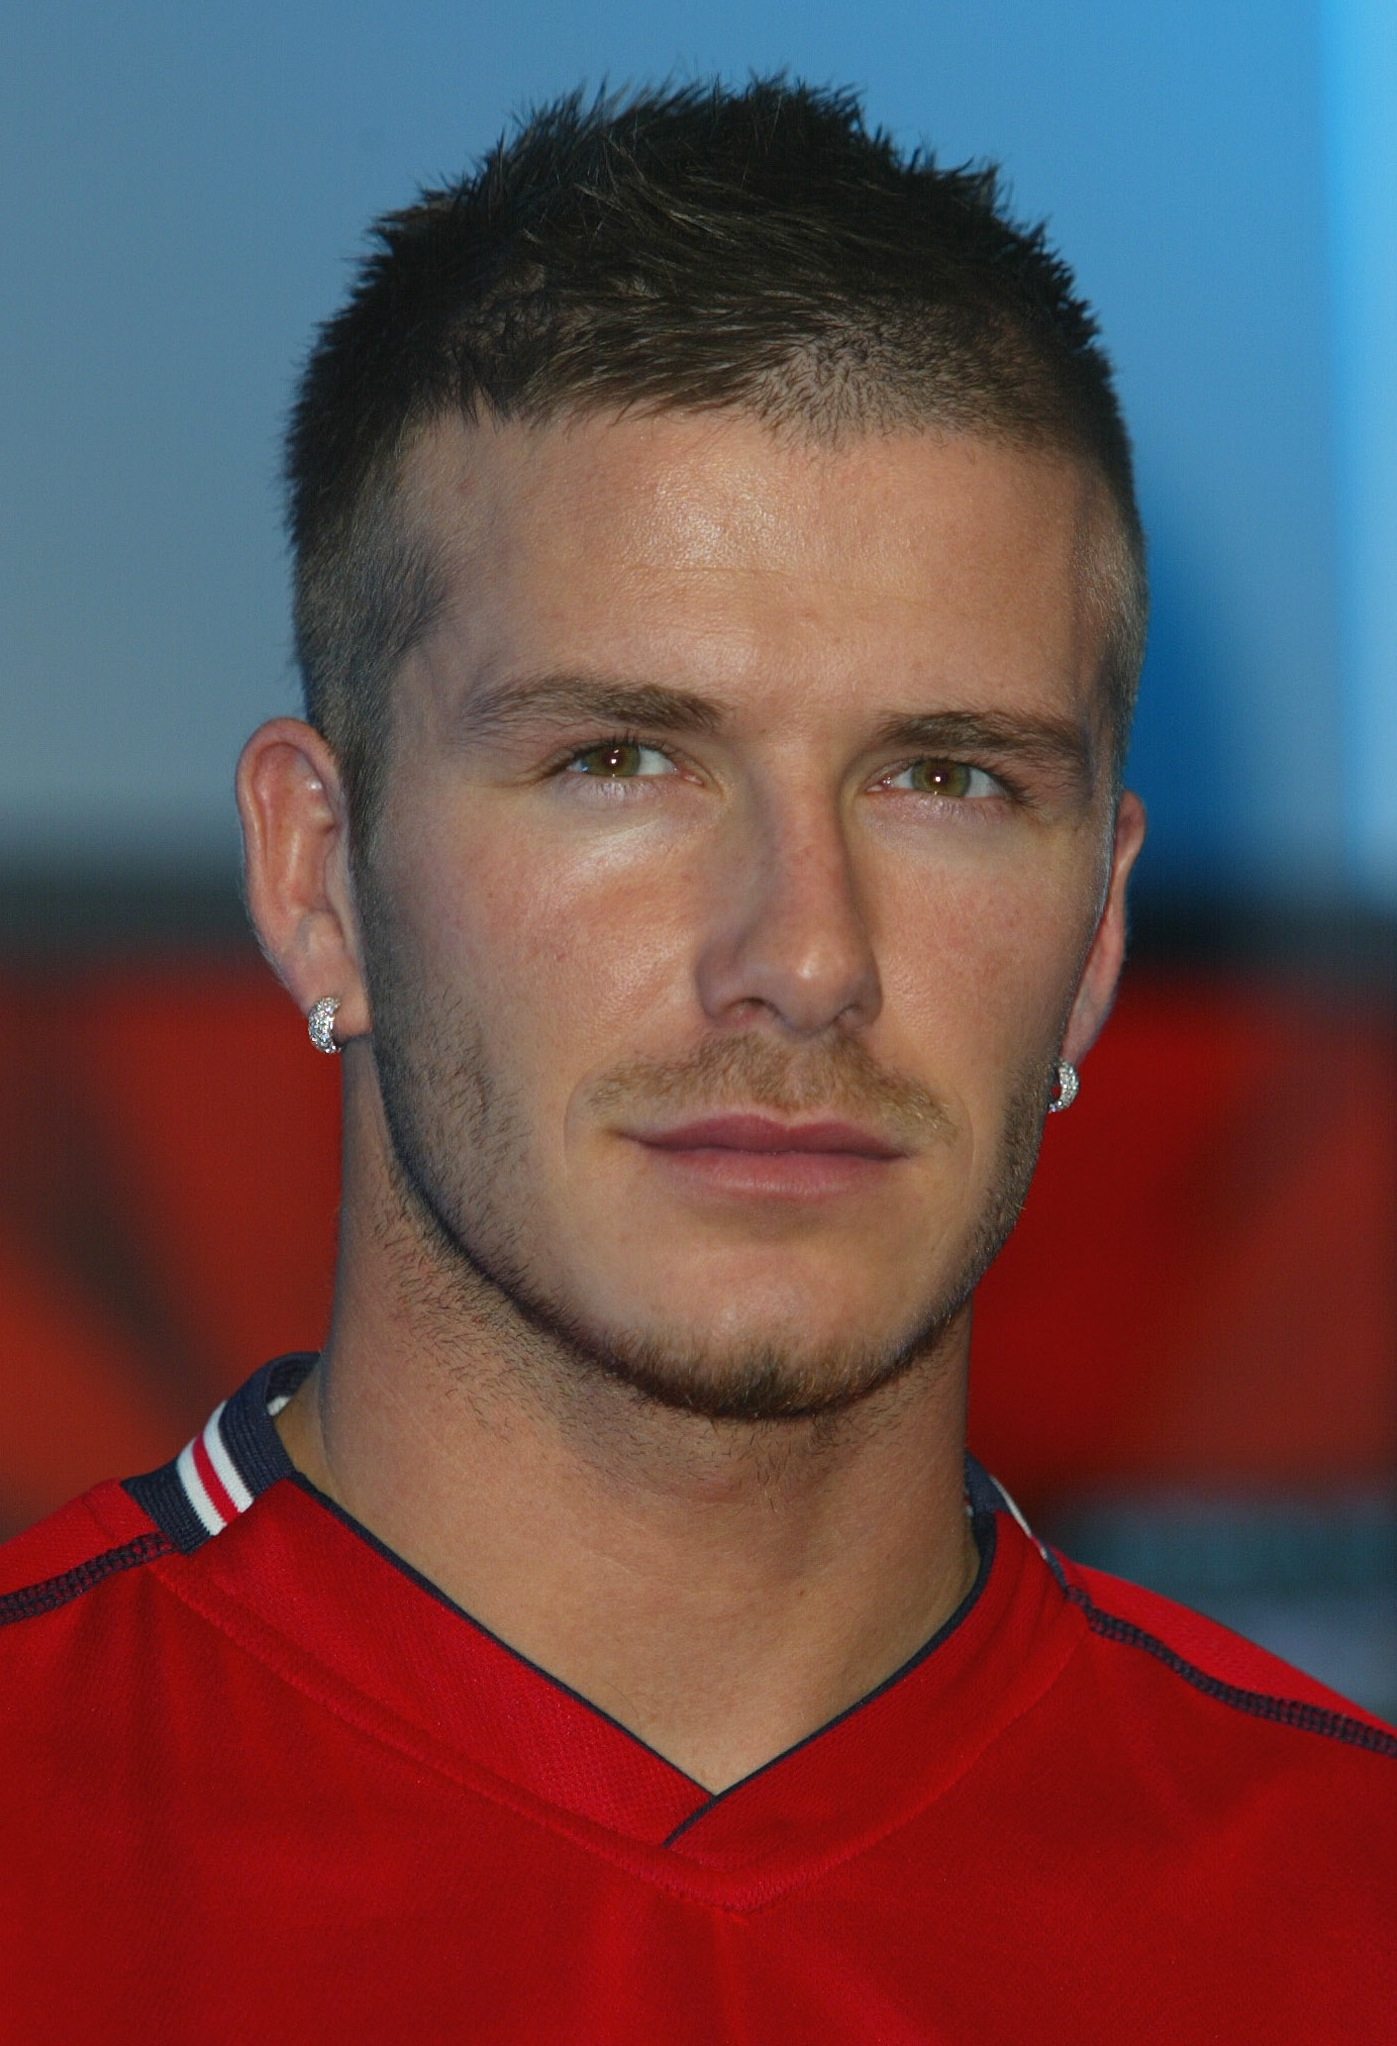 Superb In Photos Top 14 David Beckham Hairstyles Who Ate All The Pies Short Hairstyles Gunalazisus